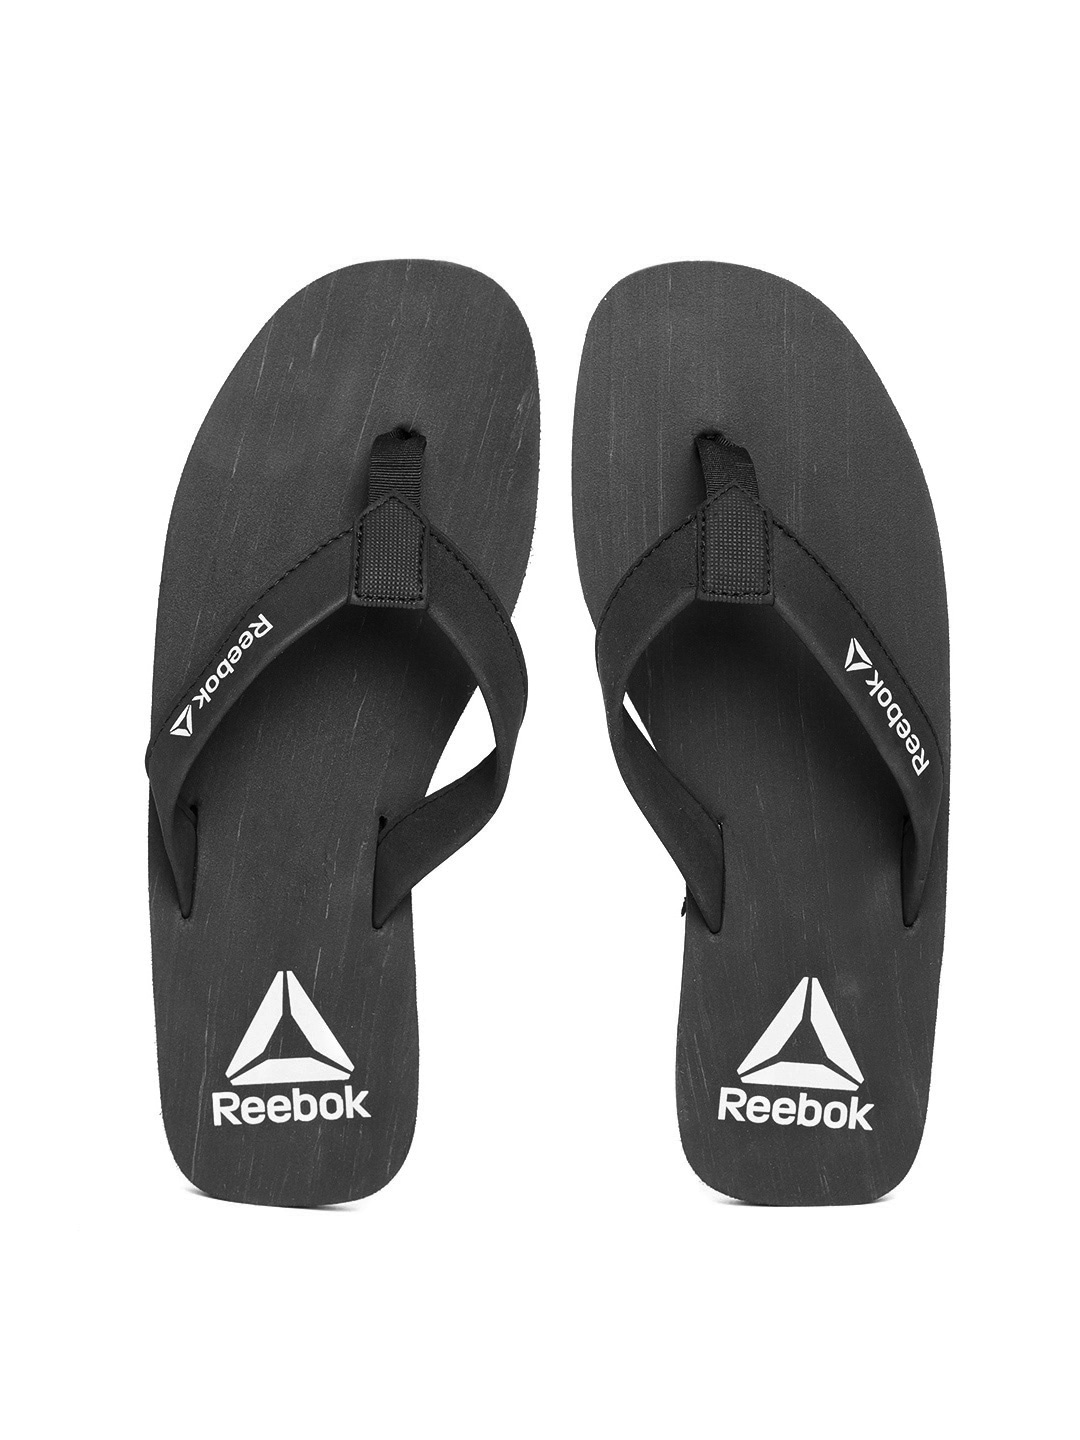 4be4c88f664f Reebok Flip Flops Black - Buy Reebok Flip Flops Black online in India